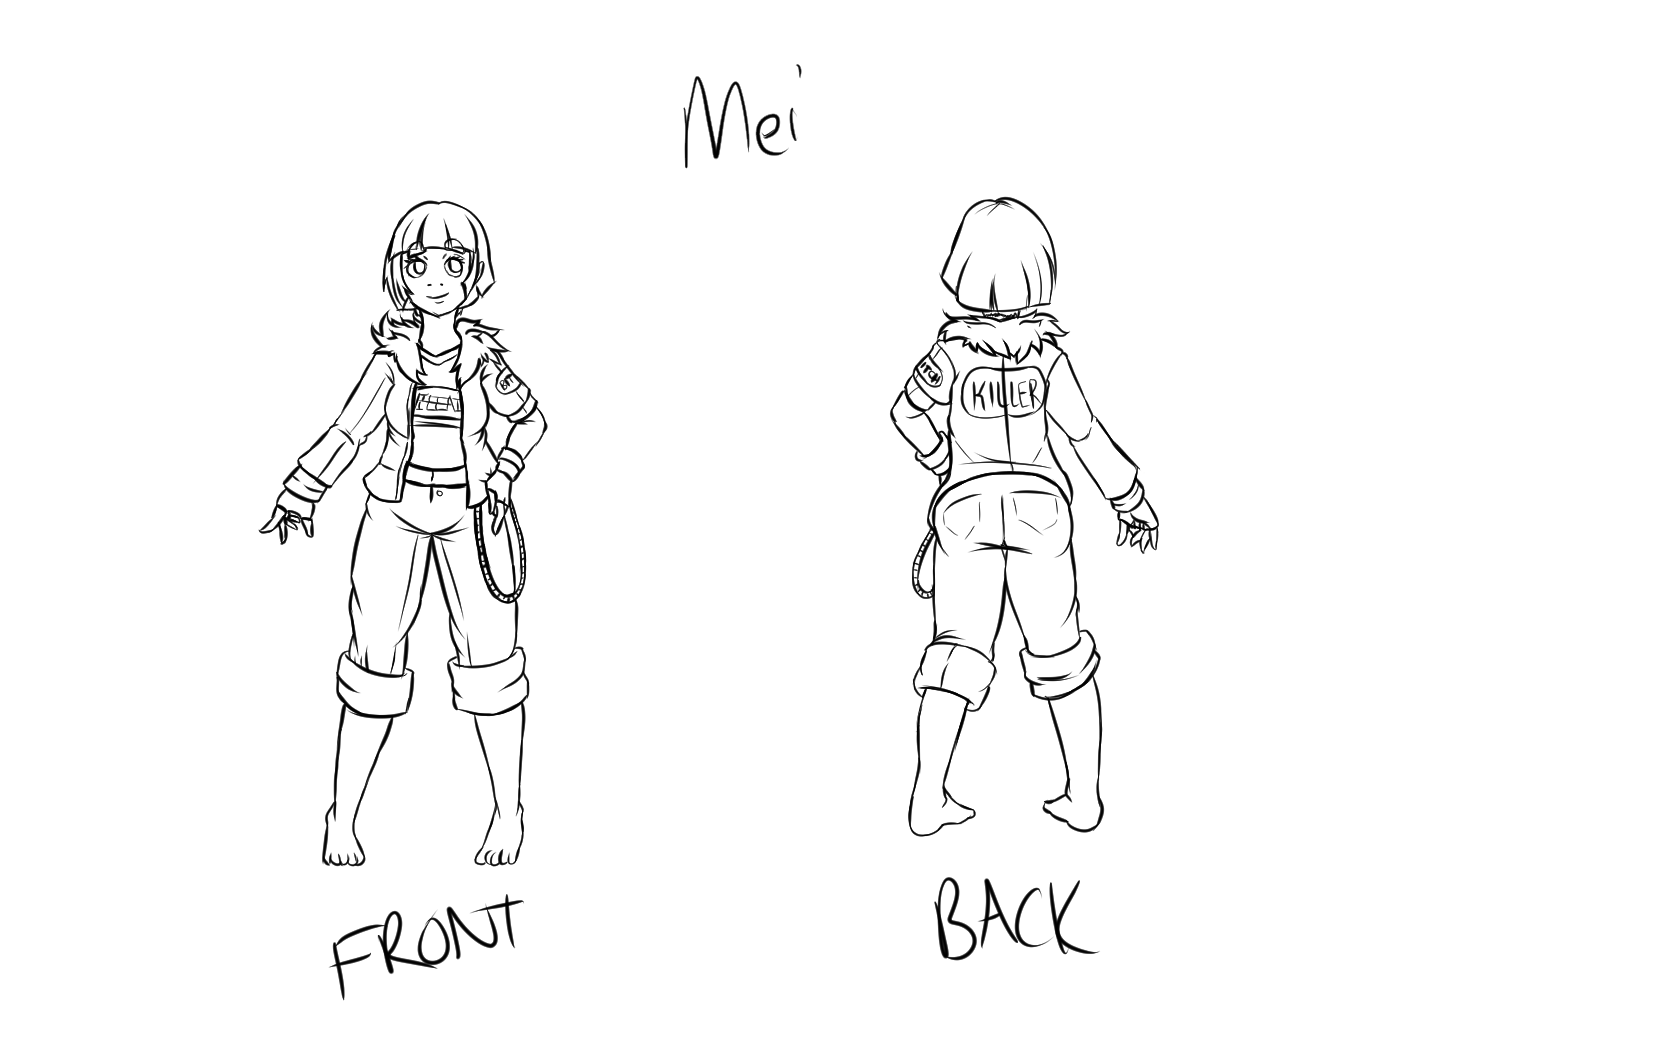 Single Line Character Art : Mei character design clothed line art by misterfinch on